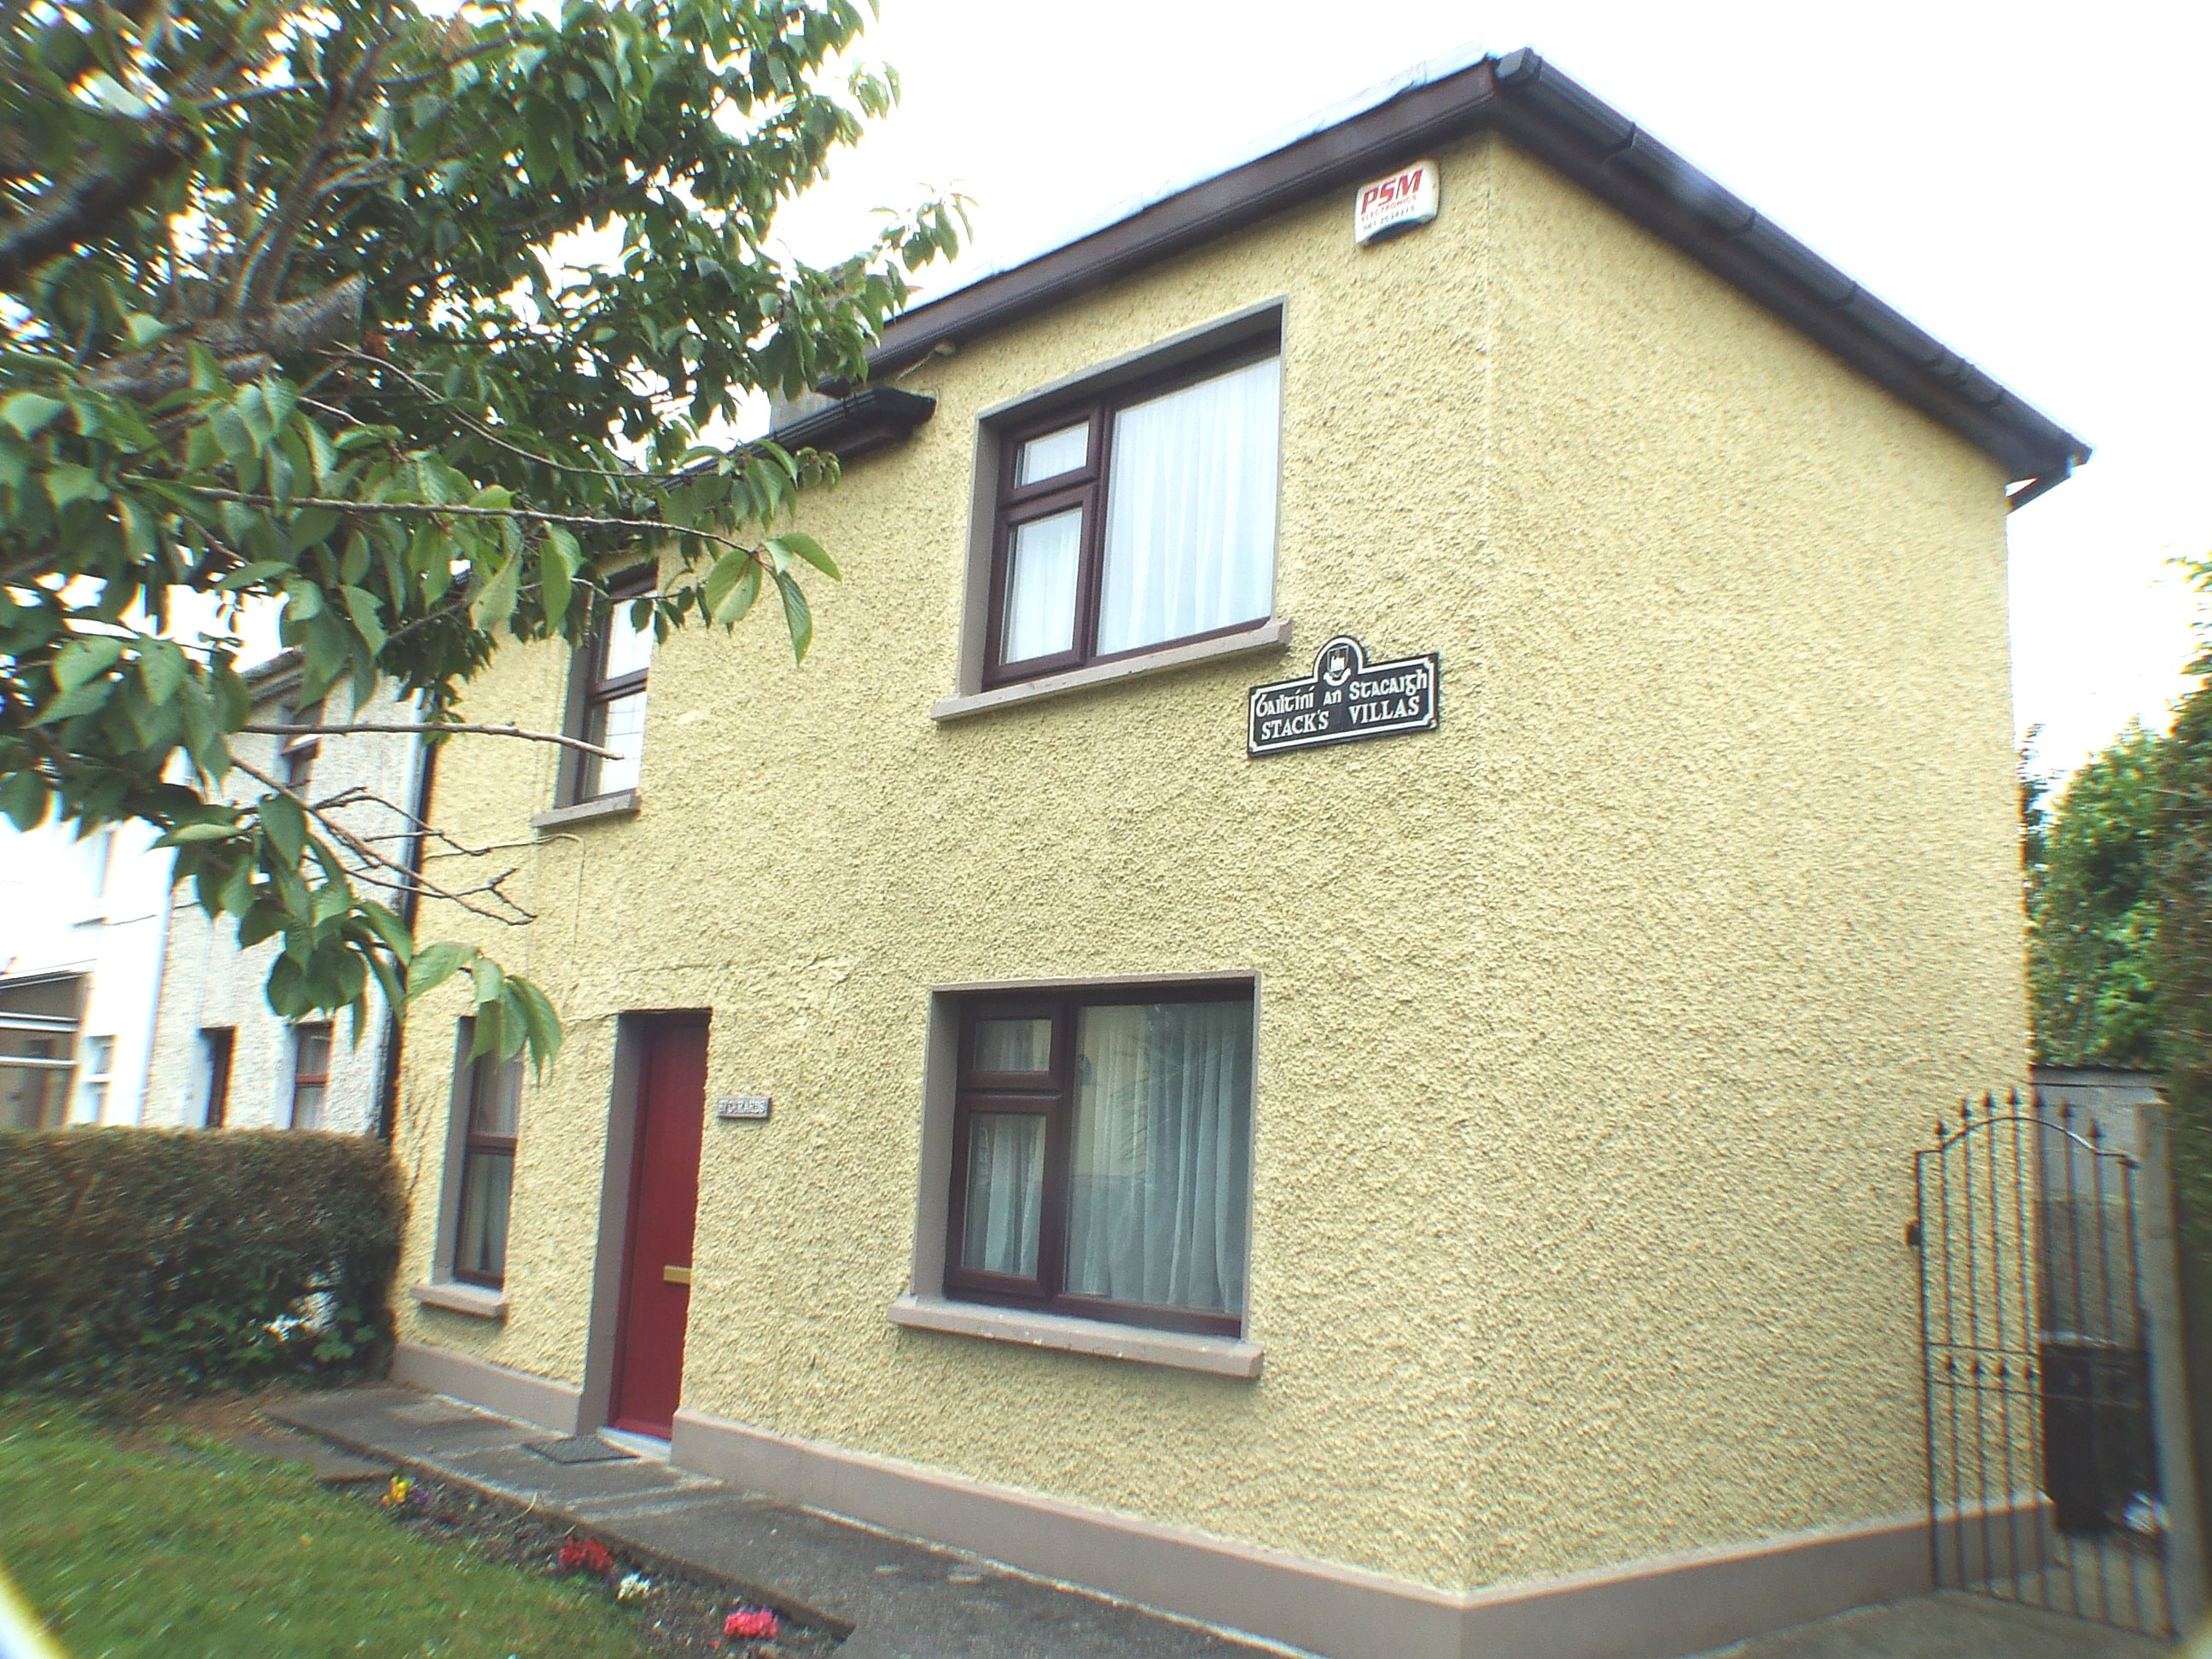 St Gerards, Stacks Villas, Tralee, Co Kerry